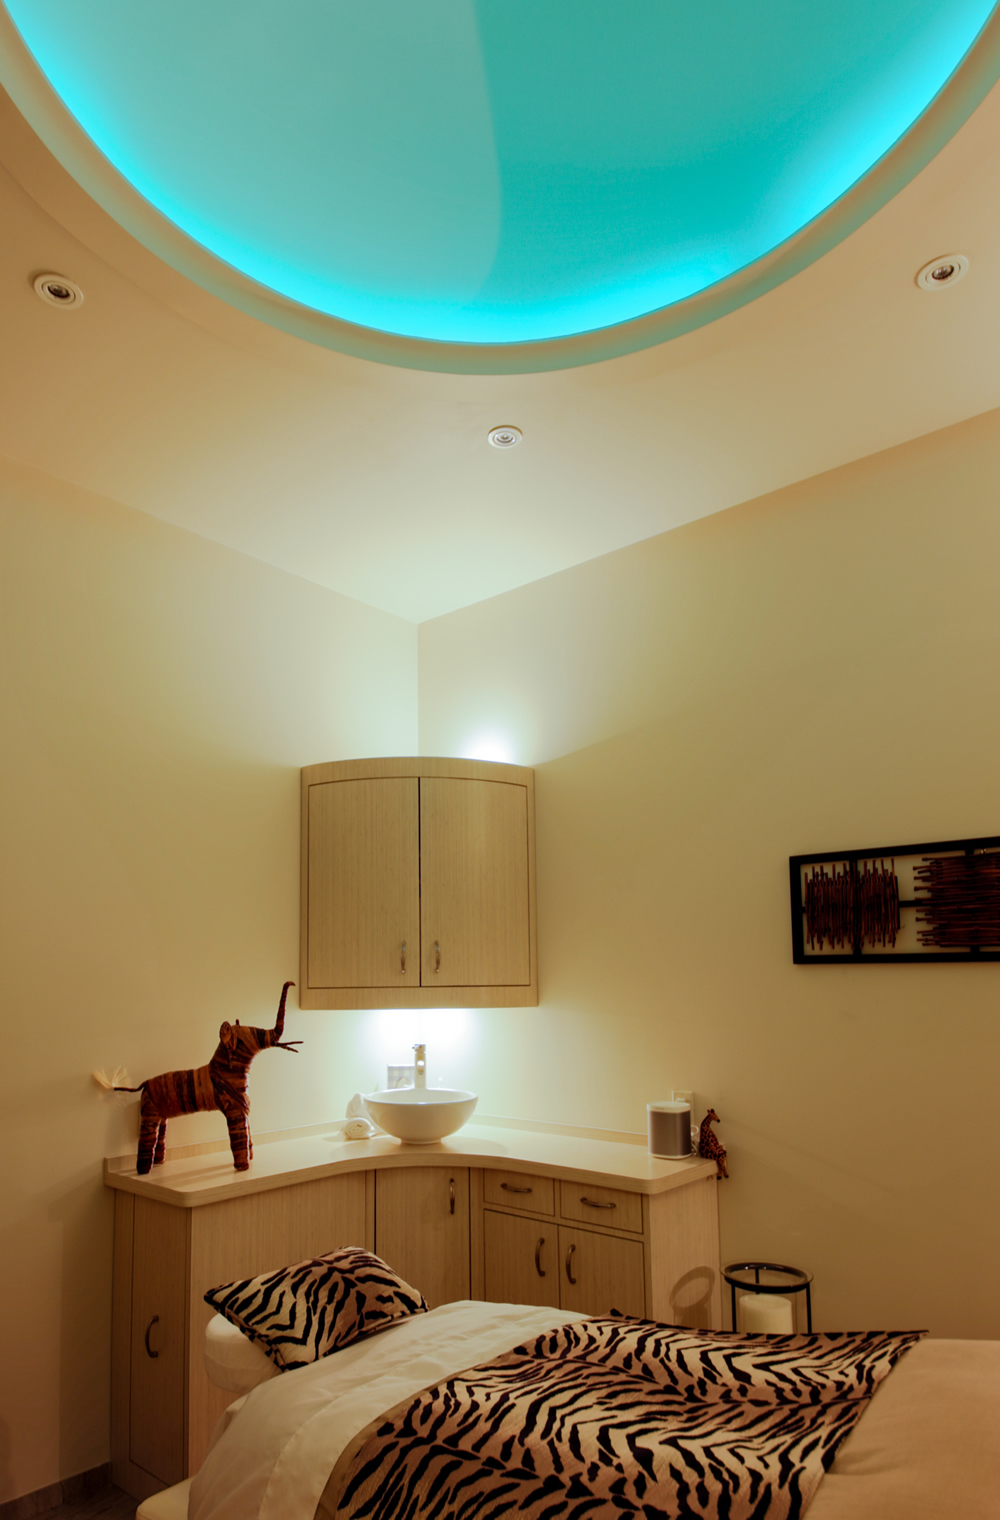 idc-spa-design-moyo-spa-wellness-treatment-room-chromatherapy.jpg